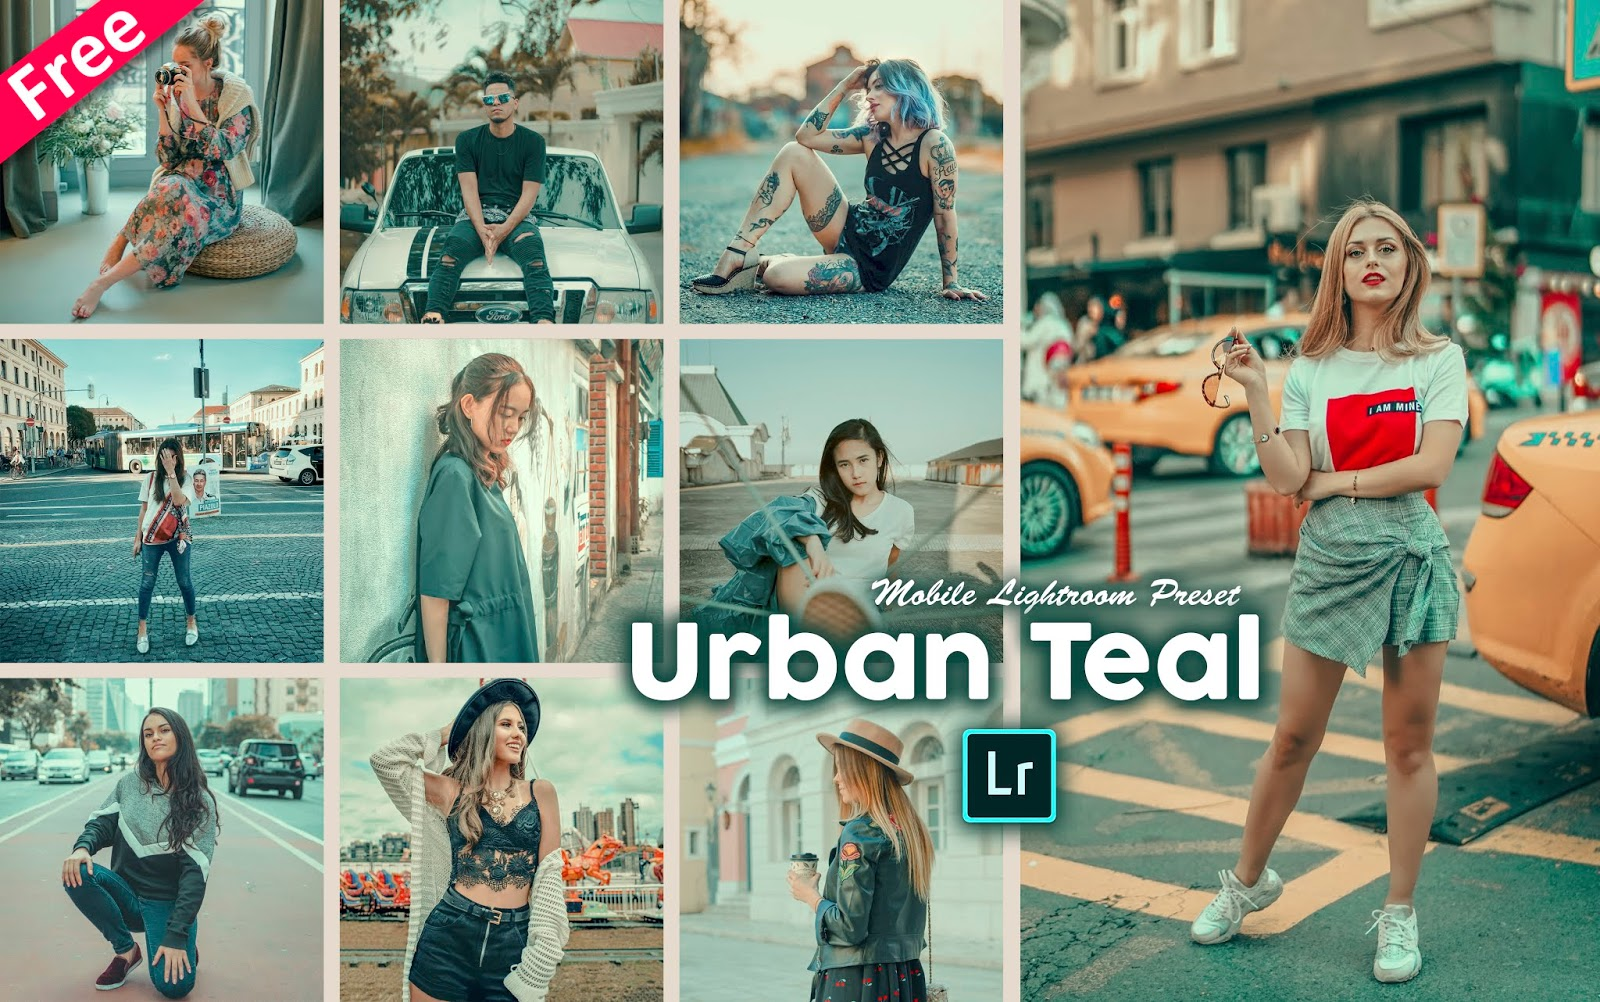 Urban Teal Tone Mobile Lightroom Presets dng for Free | How to Make Urban Teal Effect to Photos in Mobile Lightroom